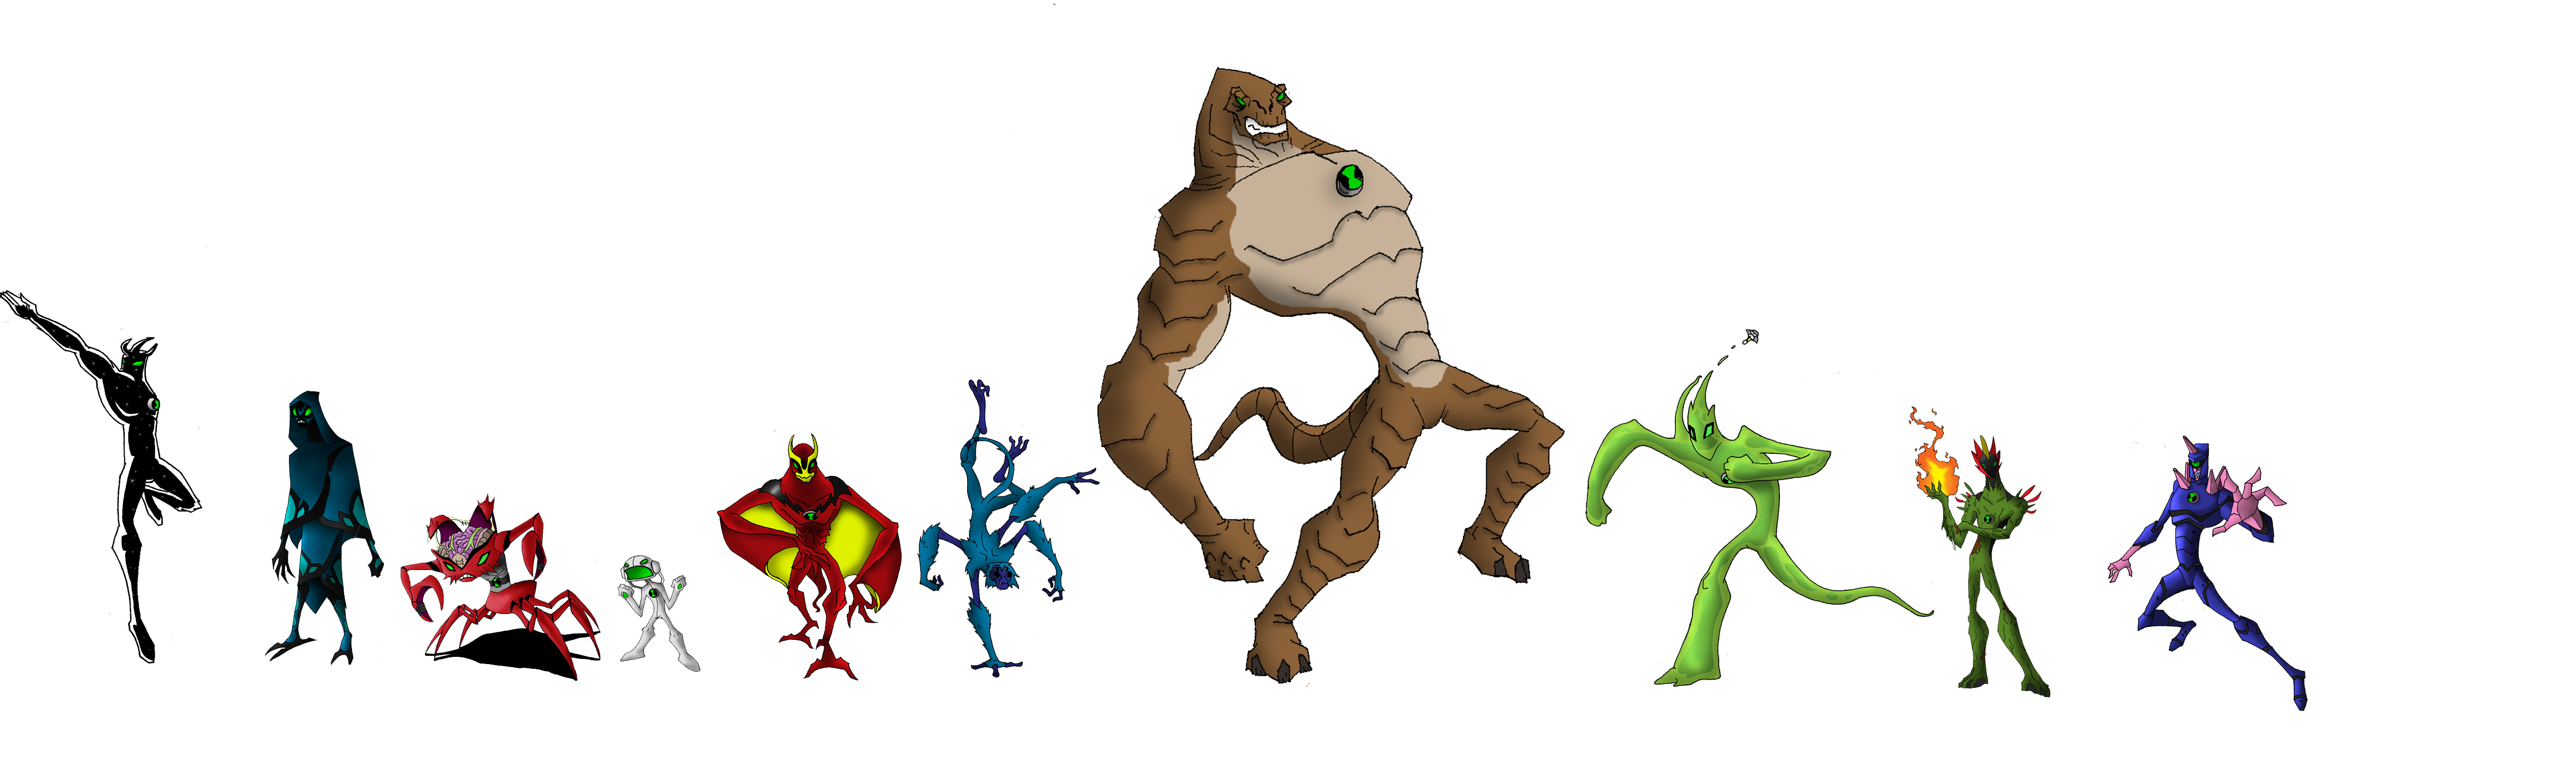 4983x1488 Ben 10 Alien Force Doom's Day By Alorix